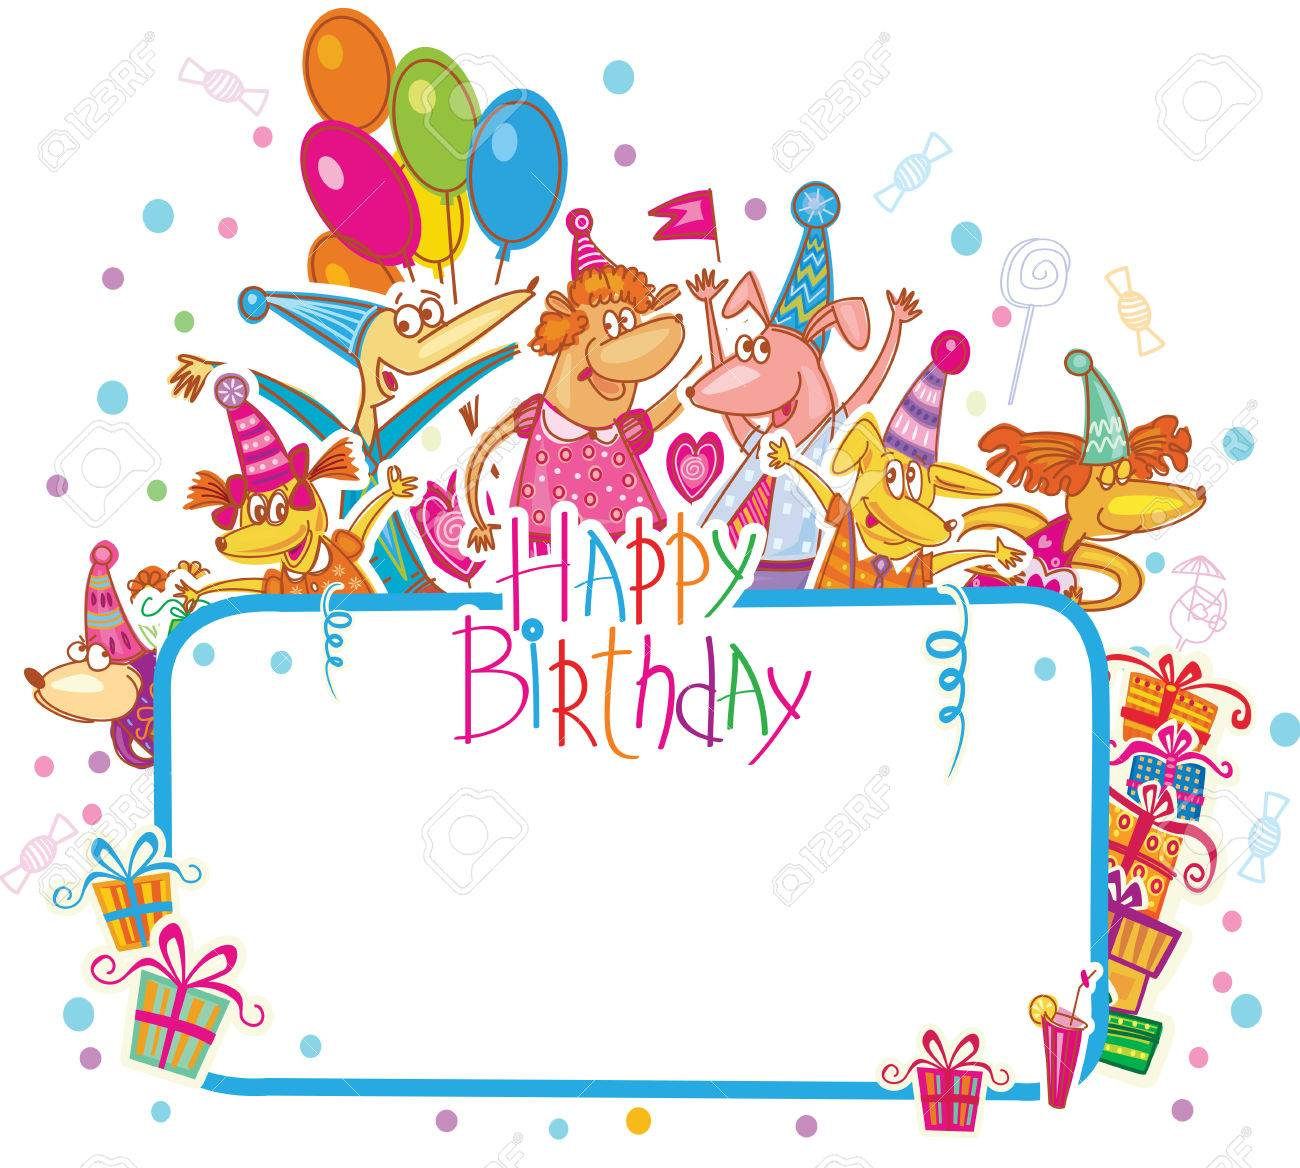 happy birthday card clipart ; 36162489-template-for-happy-birthday-card-with-place-for-text